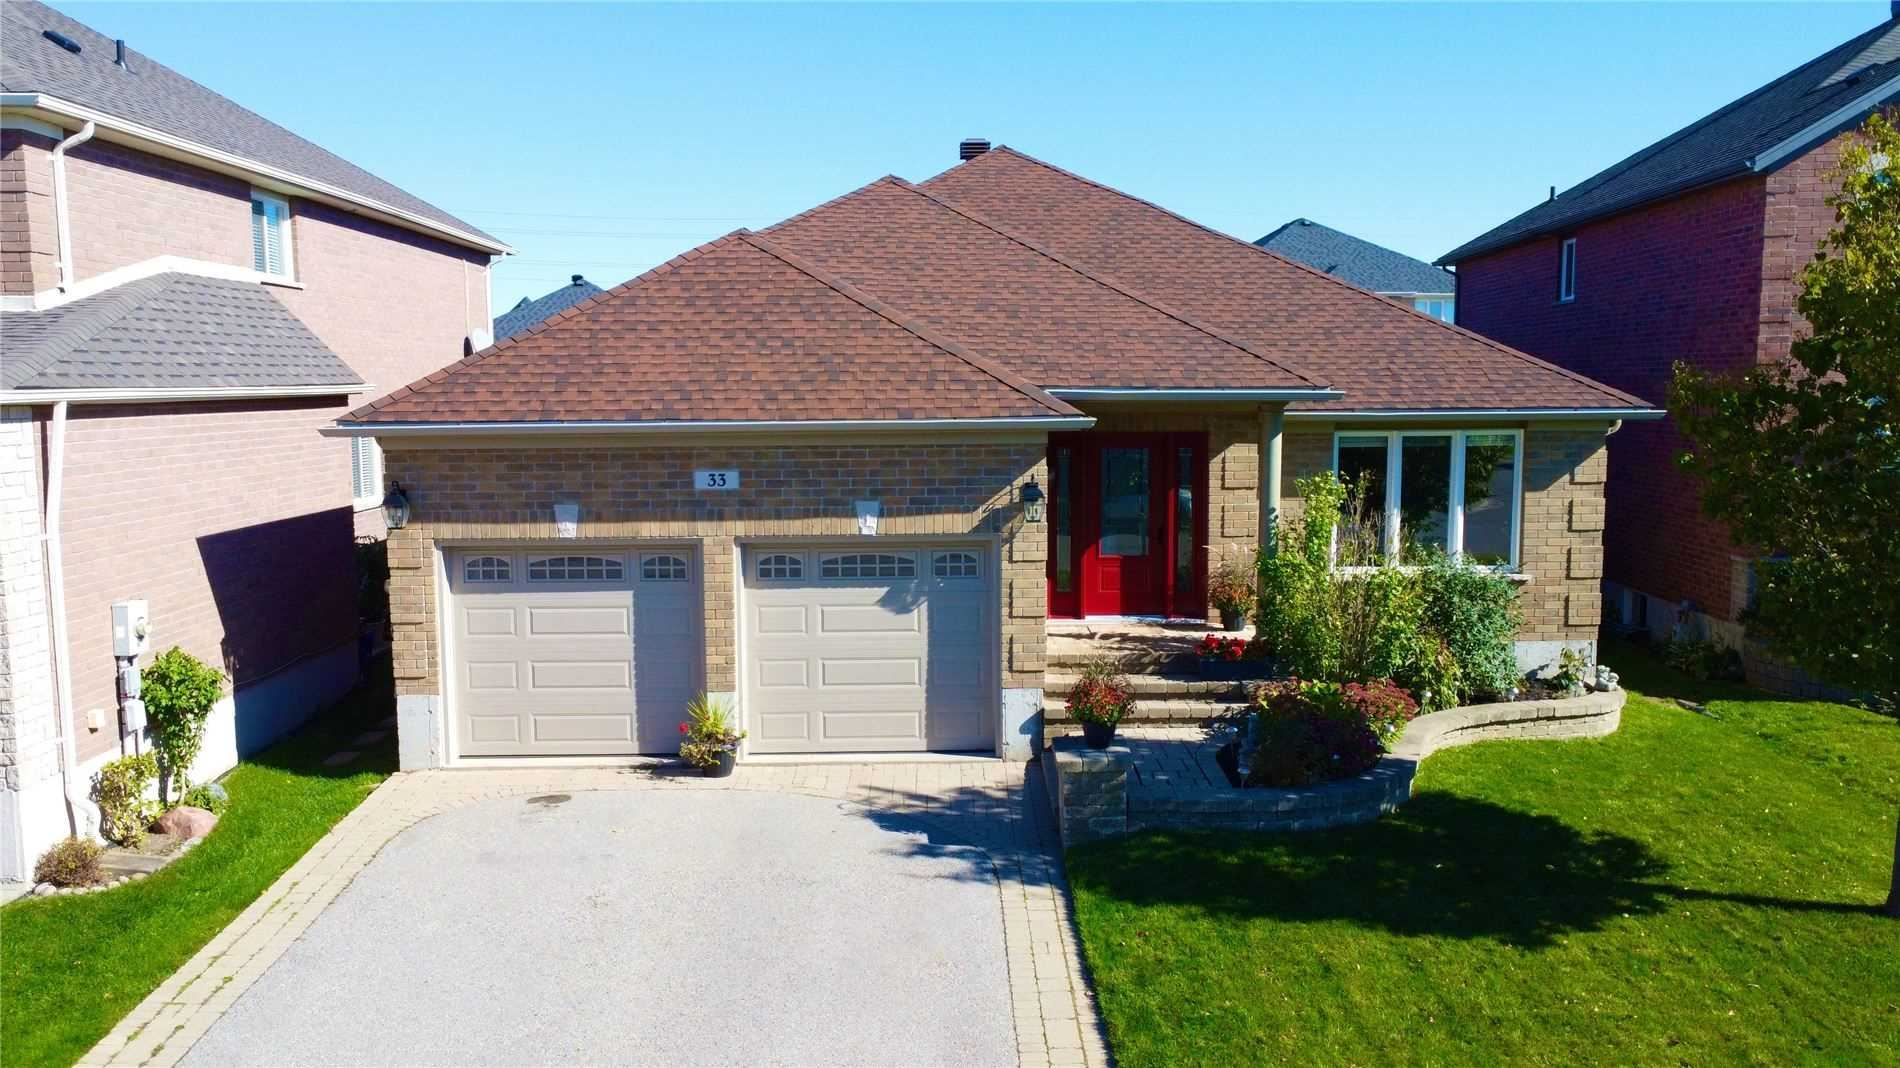 33 Falcon Cres, Barrie, ON L4N0Y9 - MLS#: S5409026